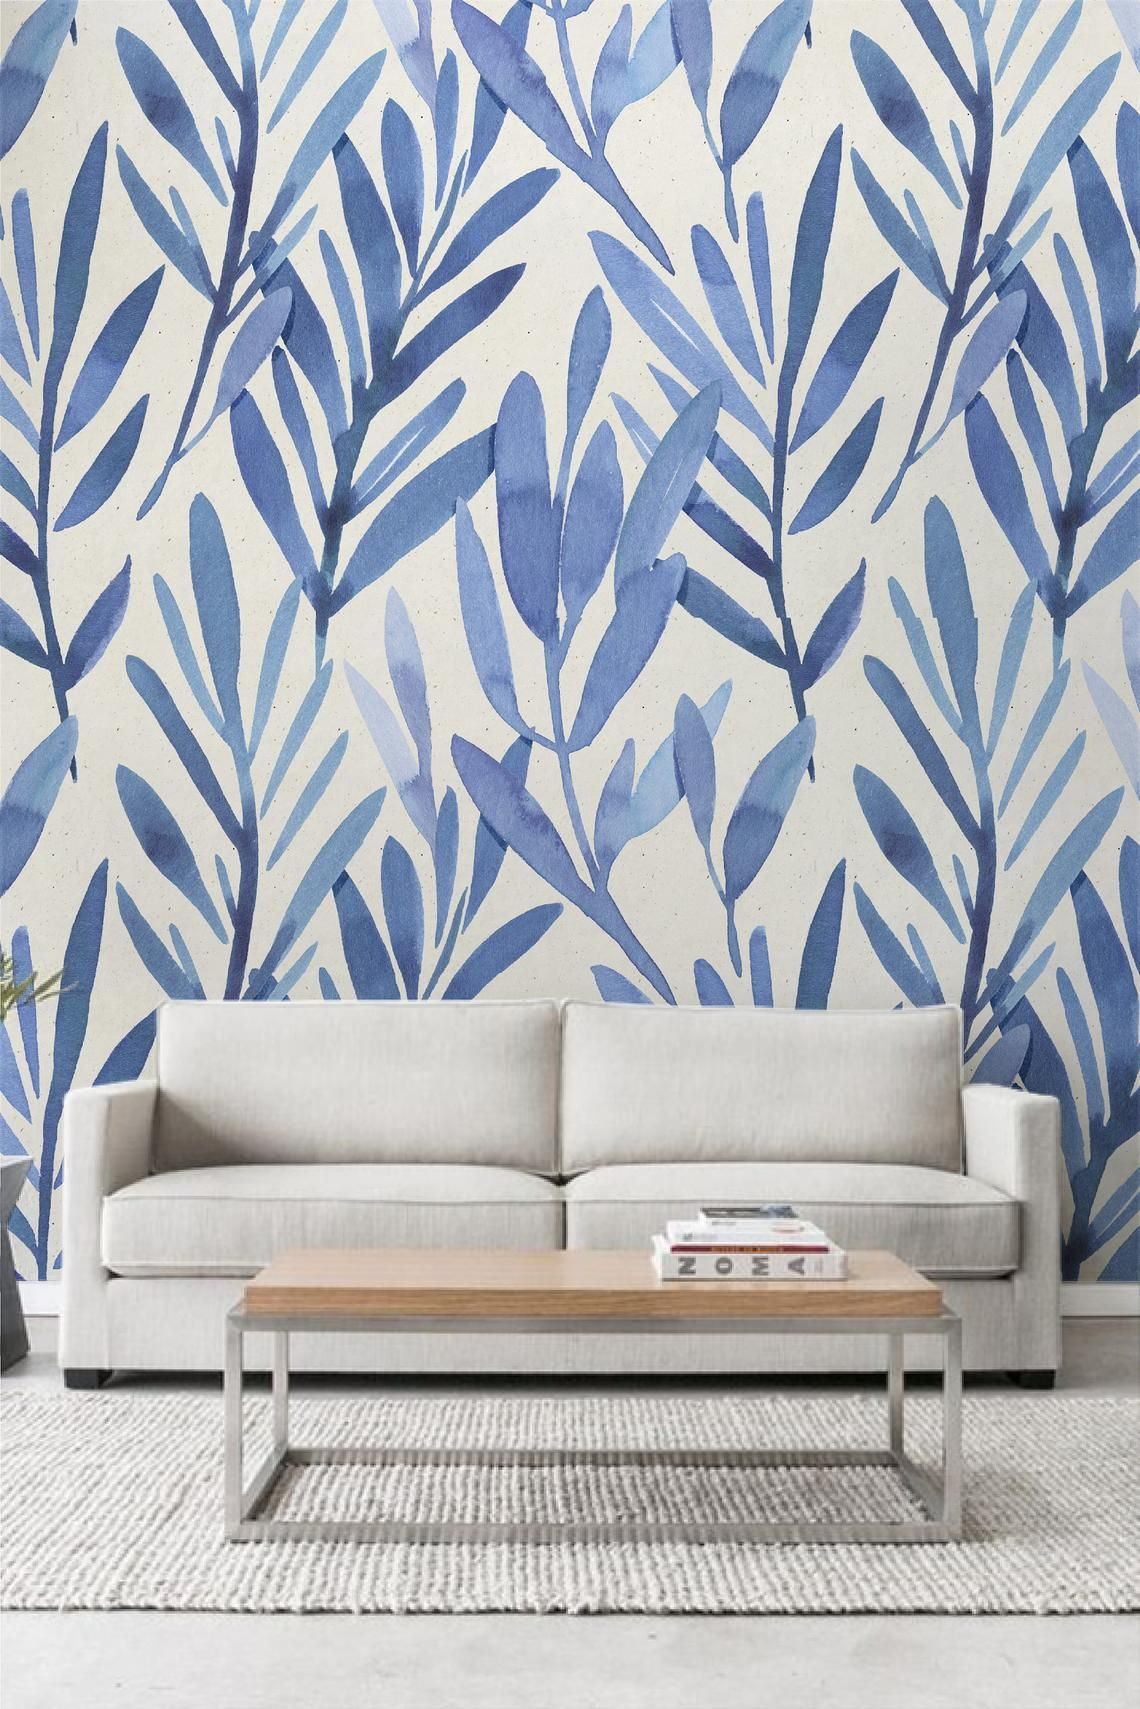 Wall Mural With Blue Watercolor Leaves Temporary Wall Mural Etsy Watercolor Wallpaper Wall Wallpaper Temporary Wallpaper